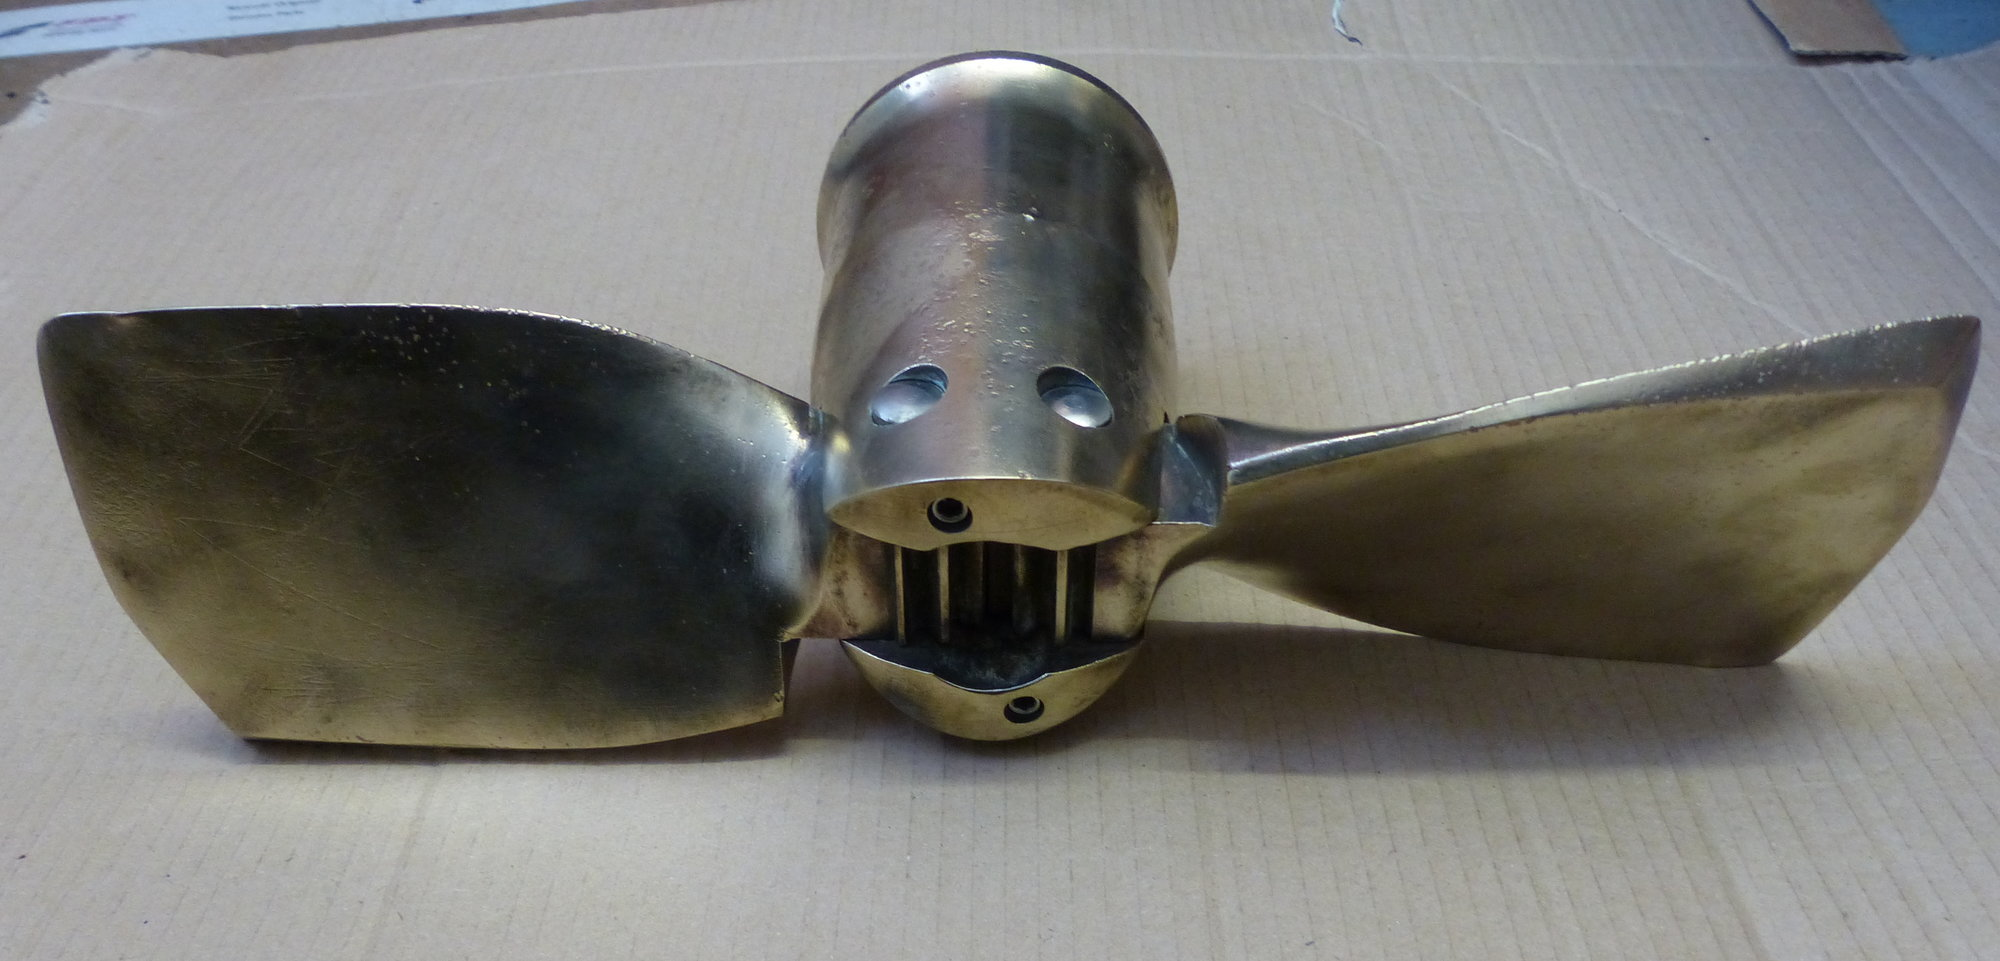 Used Cummins Engines For Sale >> Gori 2 blade folding propeller - Marine Engineering Services